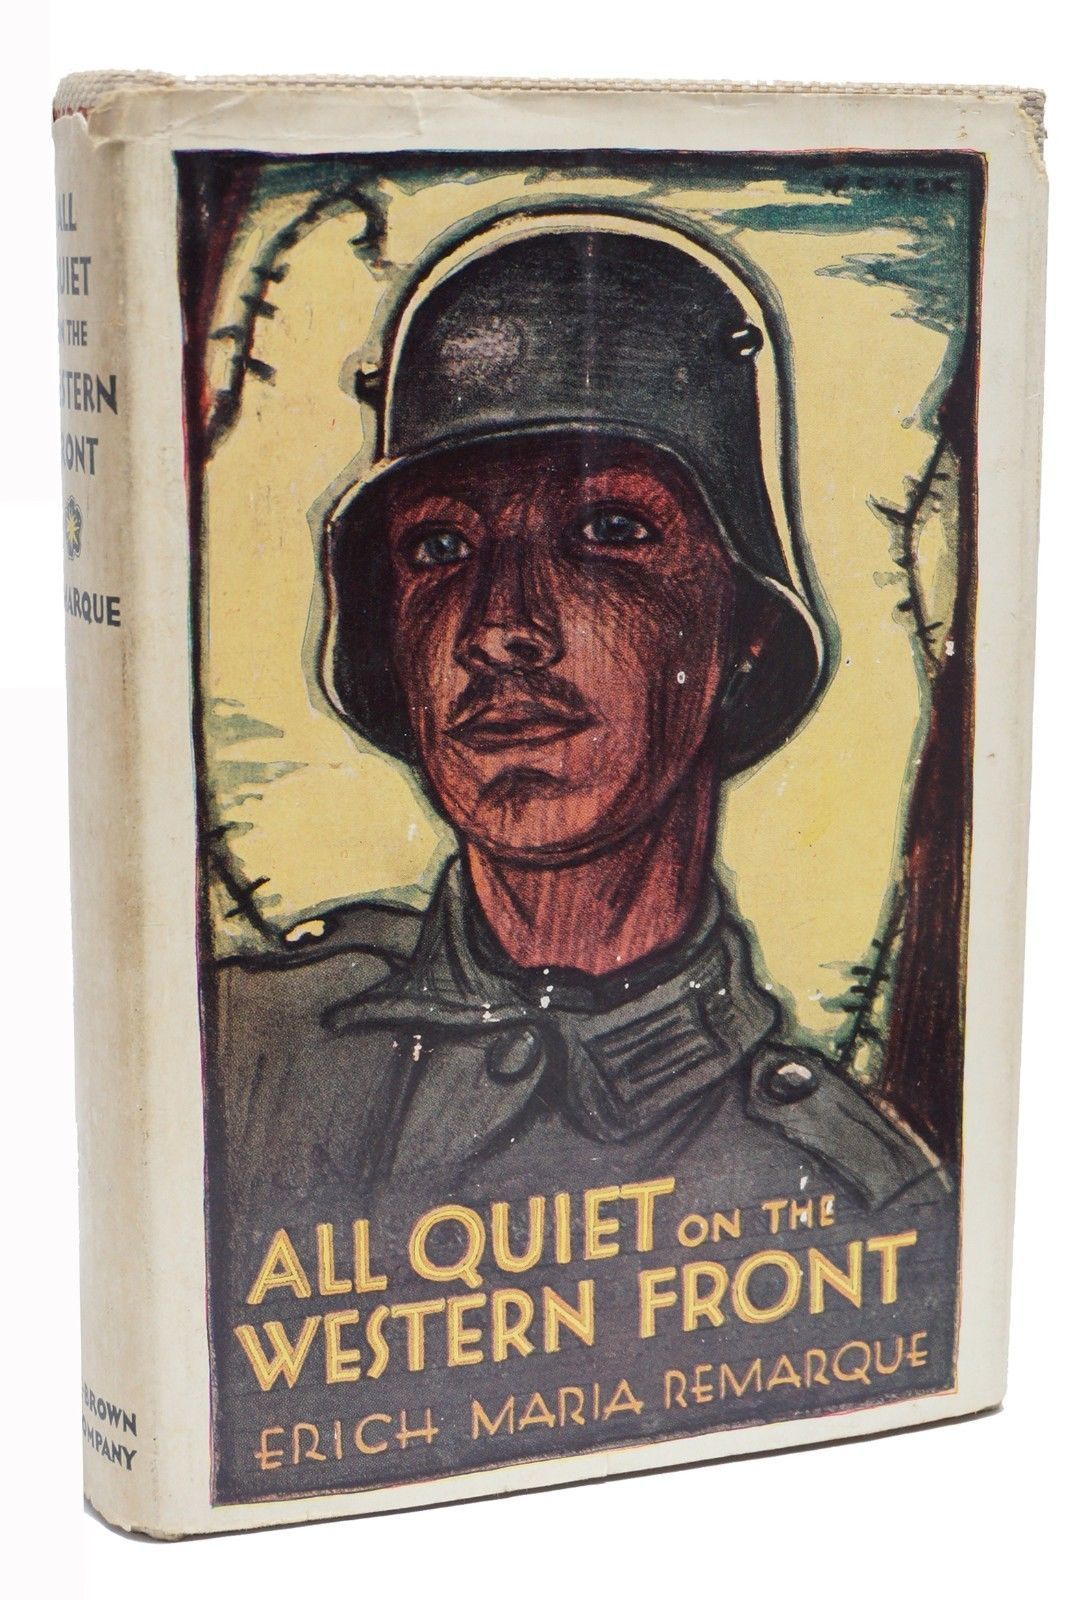 romantic ideals of war in all quiet on the western front by erich remarque Remarque's novel is a profound statement against war, focusing especially on the ravaging effects of war on the humanity of soldiers throughout paul's narrative there are attacks on the romantic ideals of warfare.